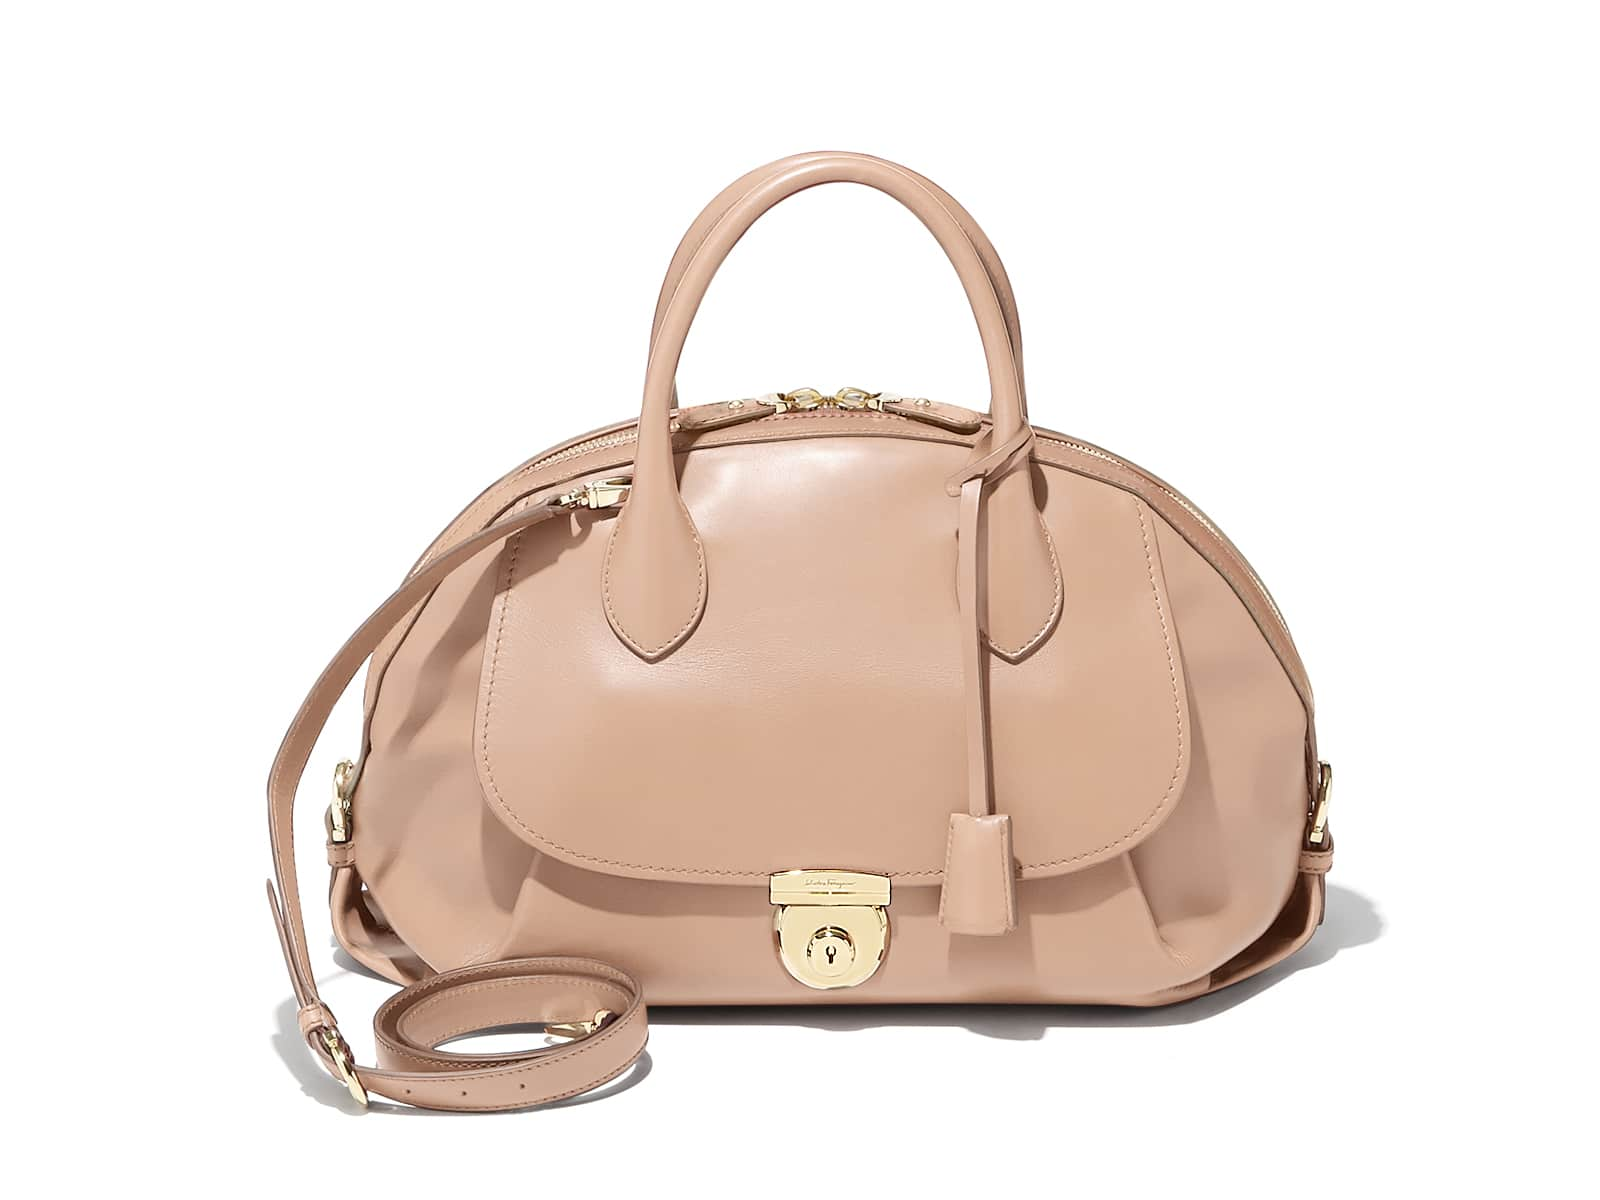 96049a1ebd8e Salvatore Ferragamo Fiamma Top Handle Bag Reference Guide